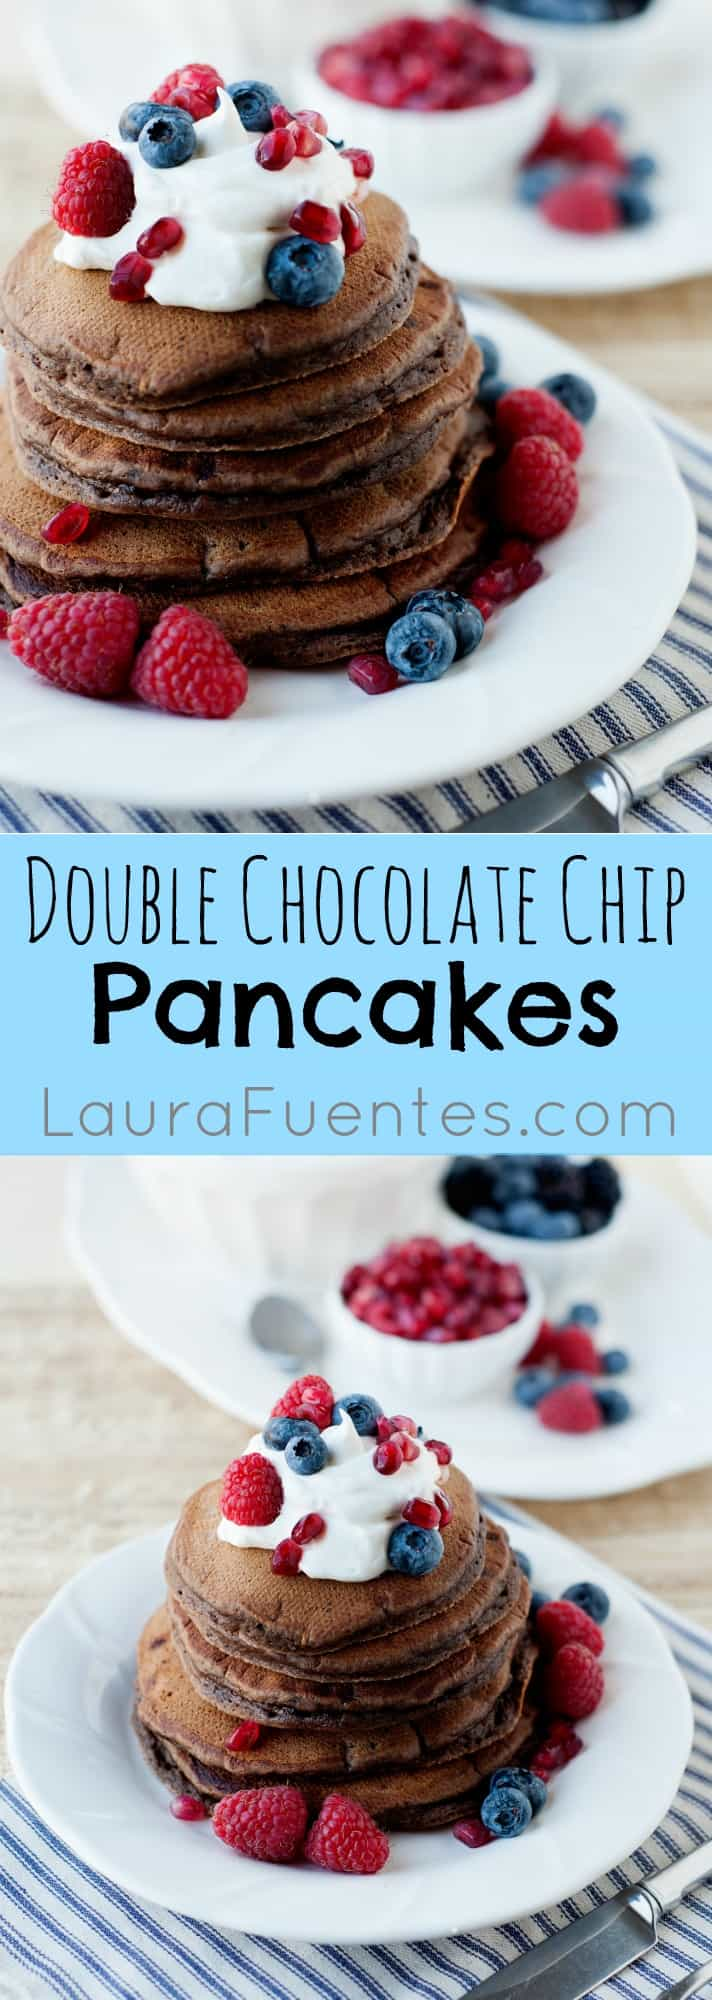 Double Chocolate Chip Pancakes: The perfect treat for my daughter's birthday breakfast. Chocolate and pancakes; You cannot go wrong with this recipe!